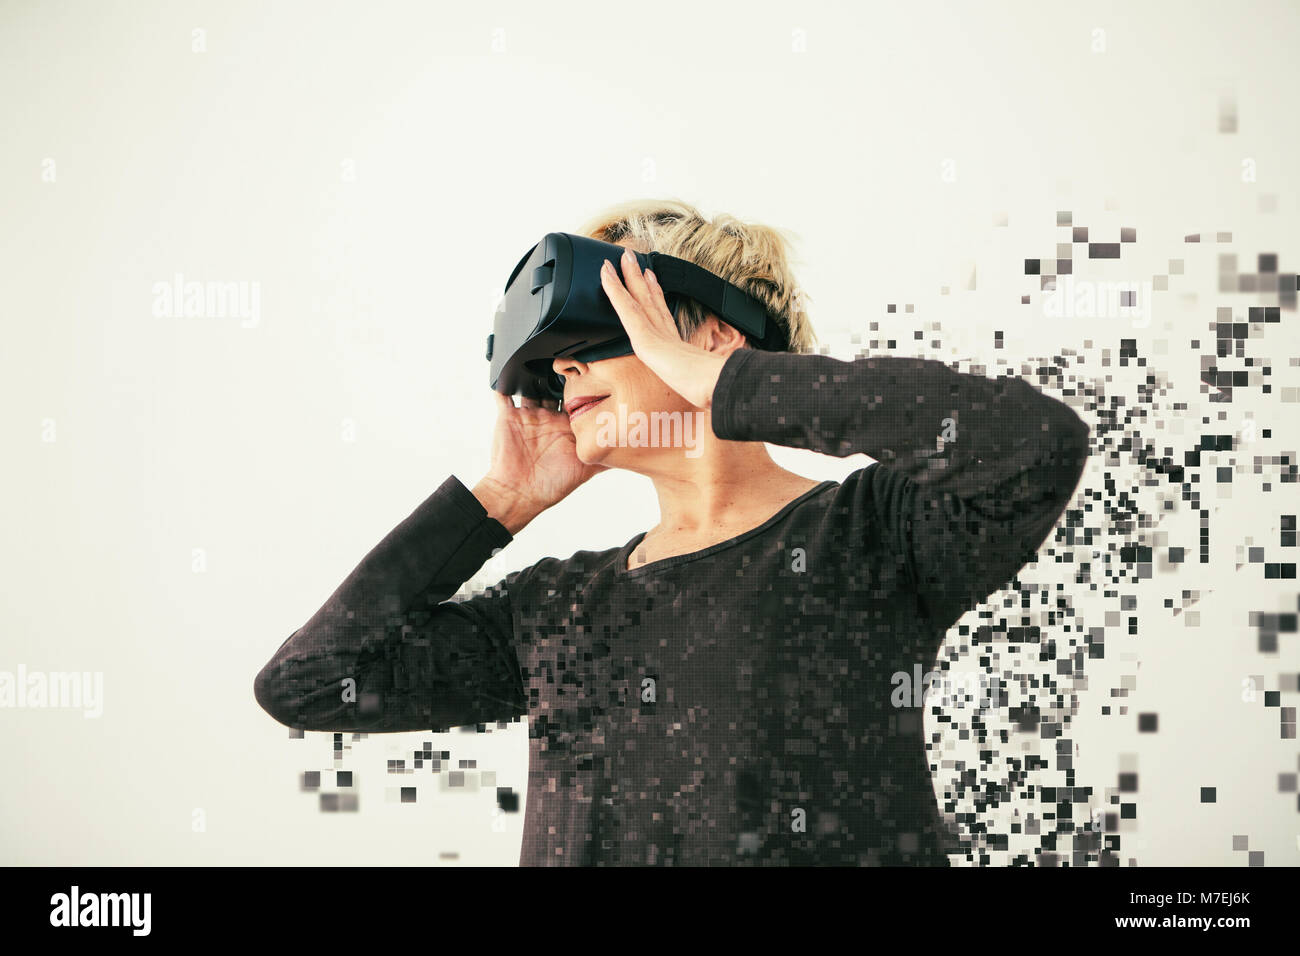 An elderly woman in virtual reality glasses is scattered by pixels. Conceptual photography with visual effects with - Stock Image